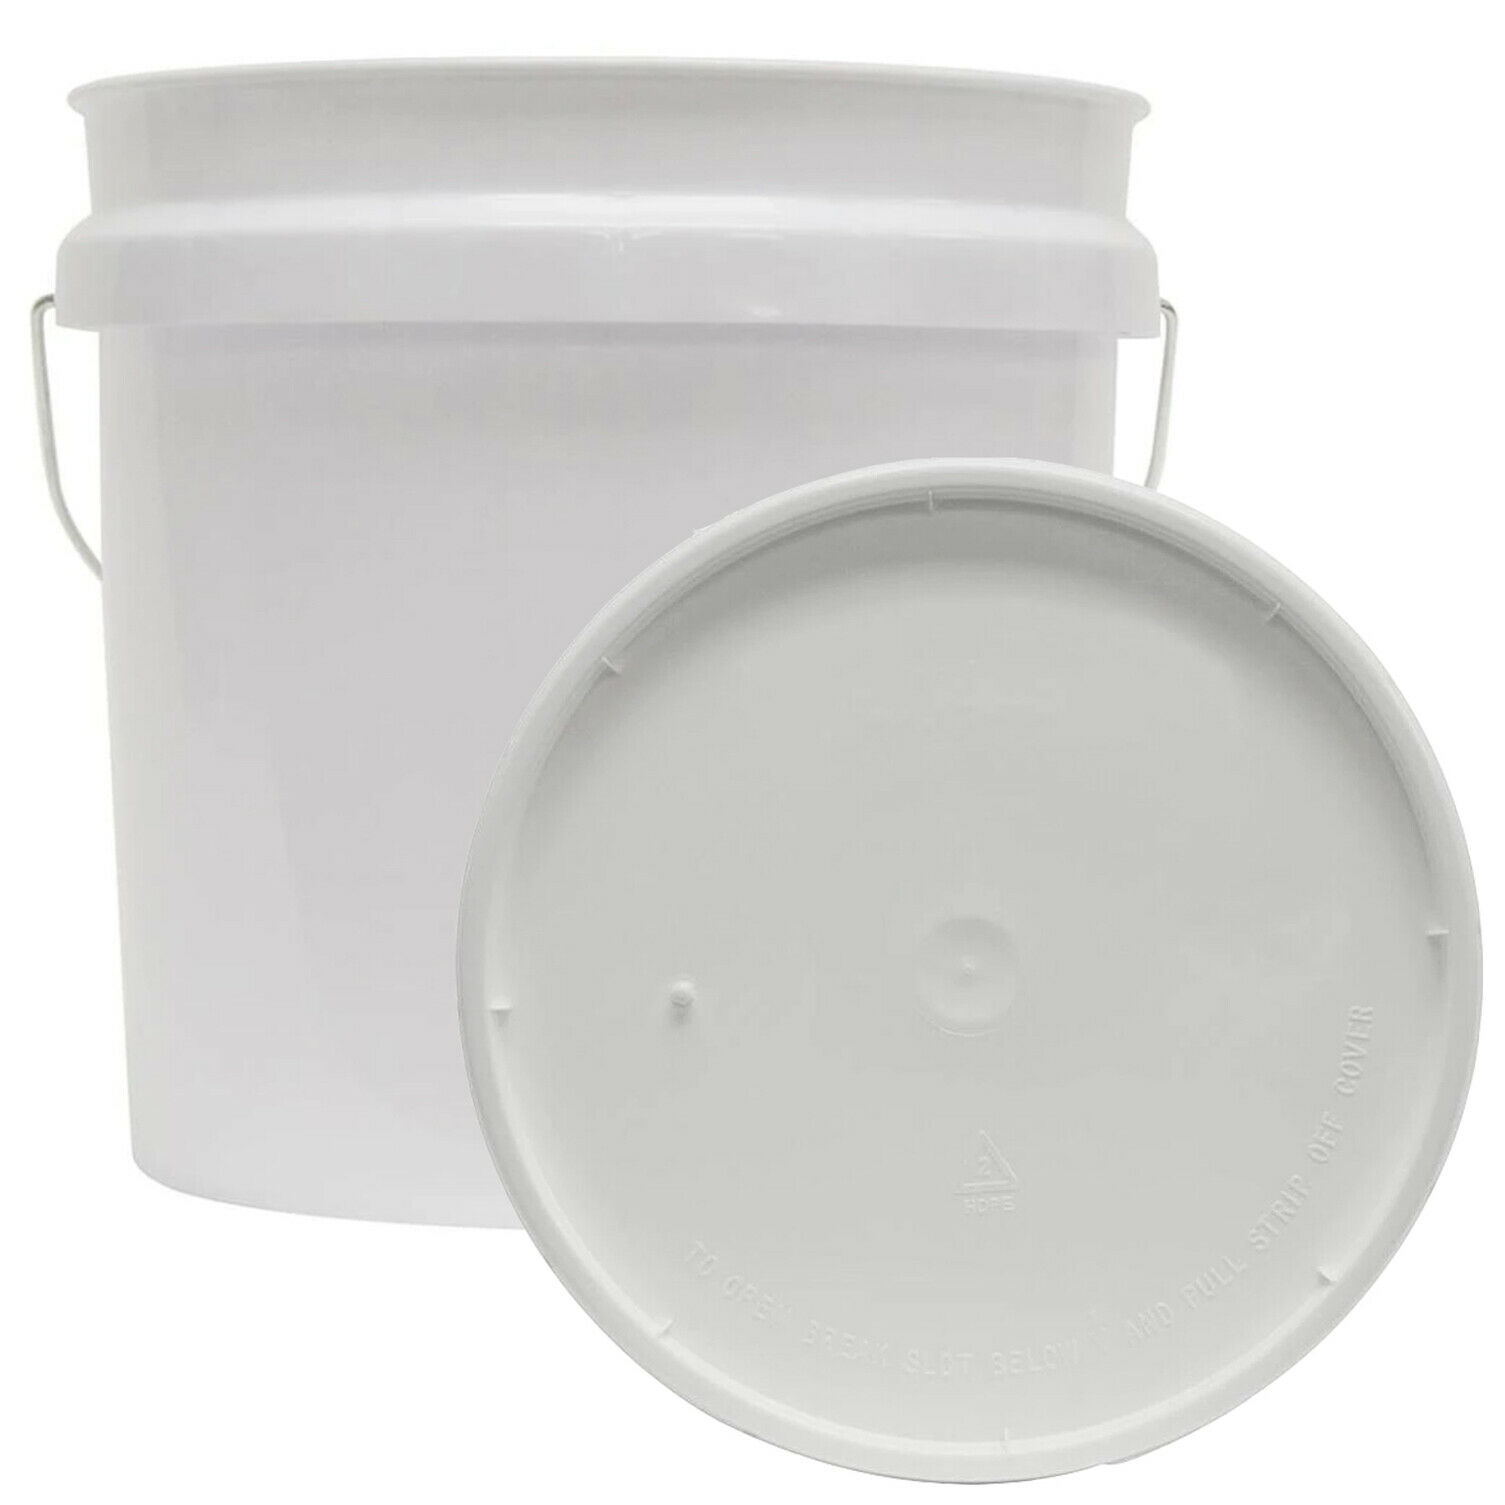 2 GALLON RESIDENTIAL BUCKET Food Grade BPA Free Plastic Storage Holder With Lid 1